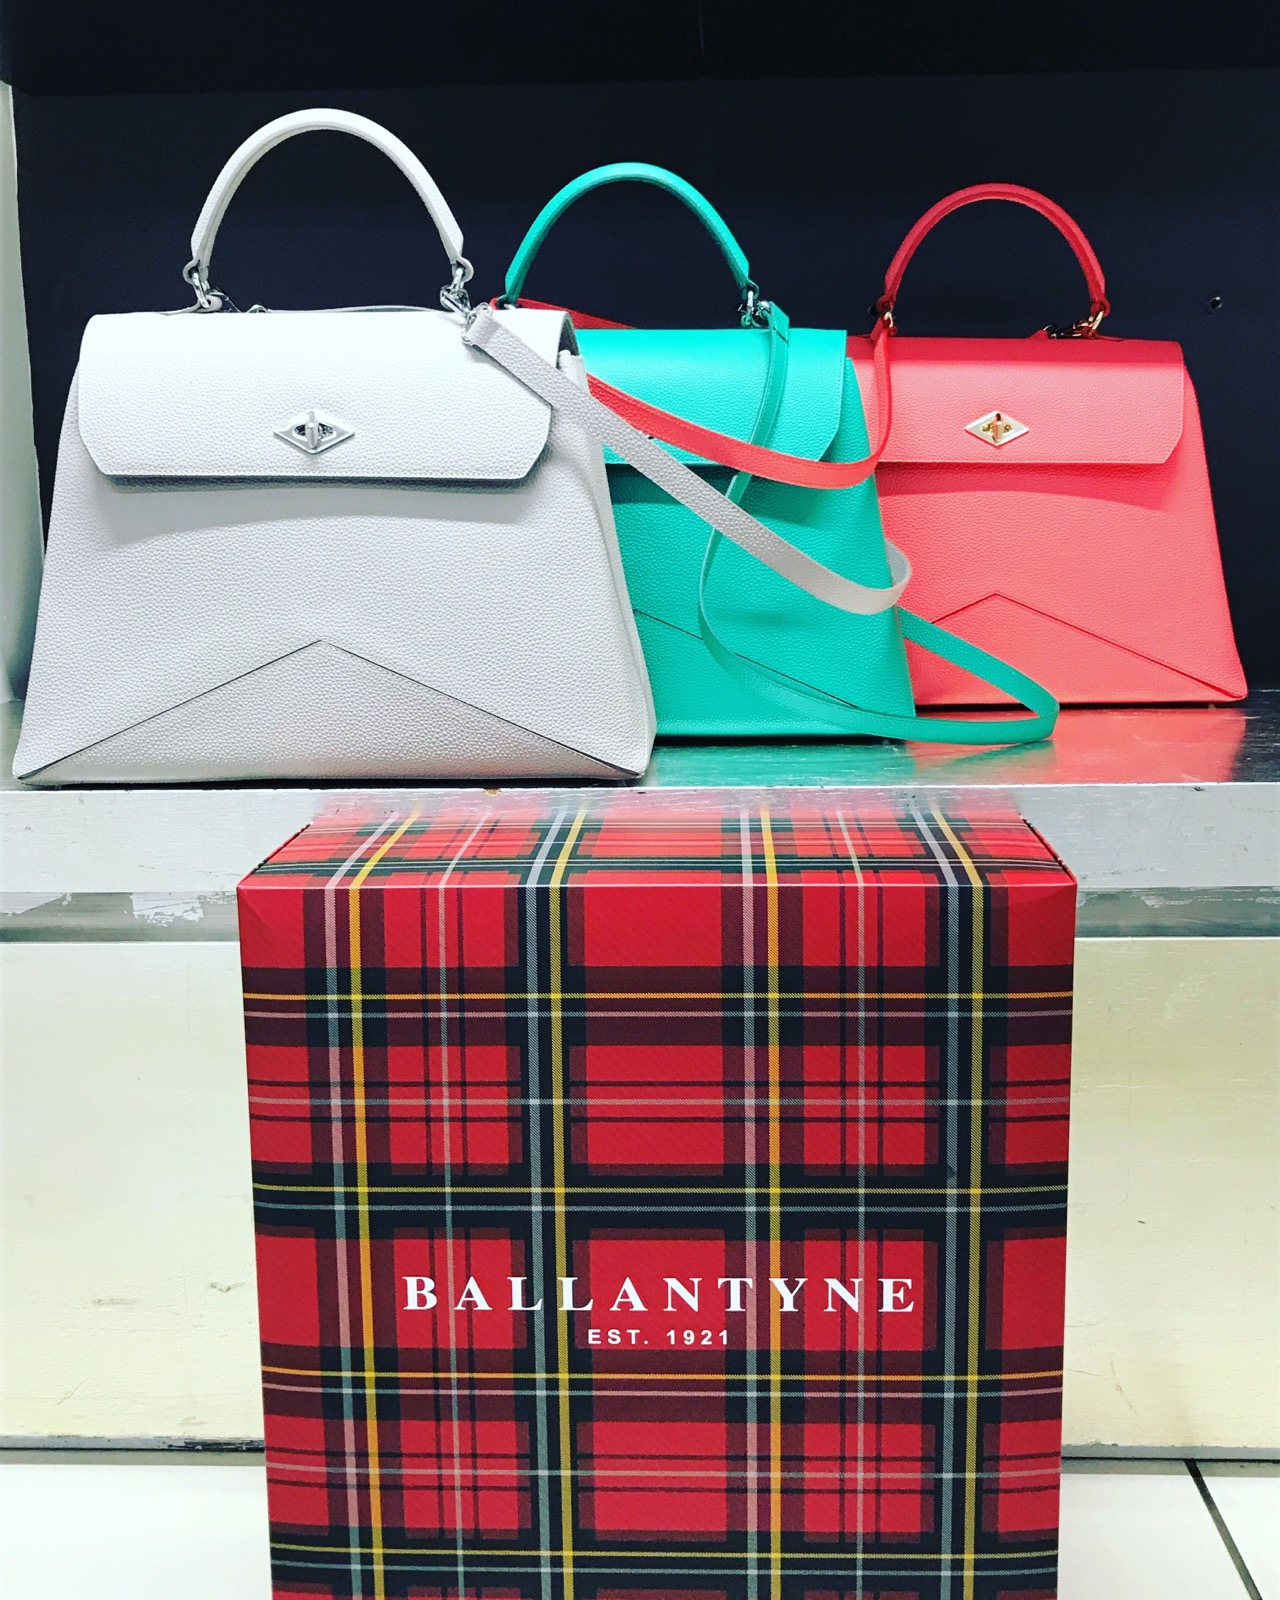 Diamondbag Ballantyne